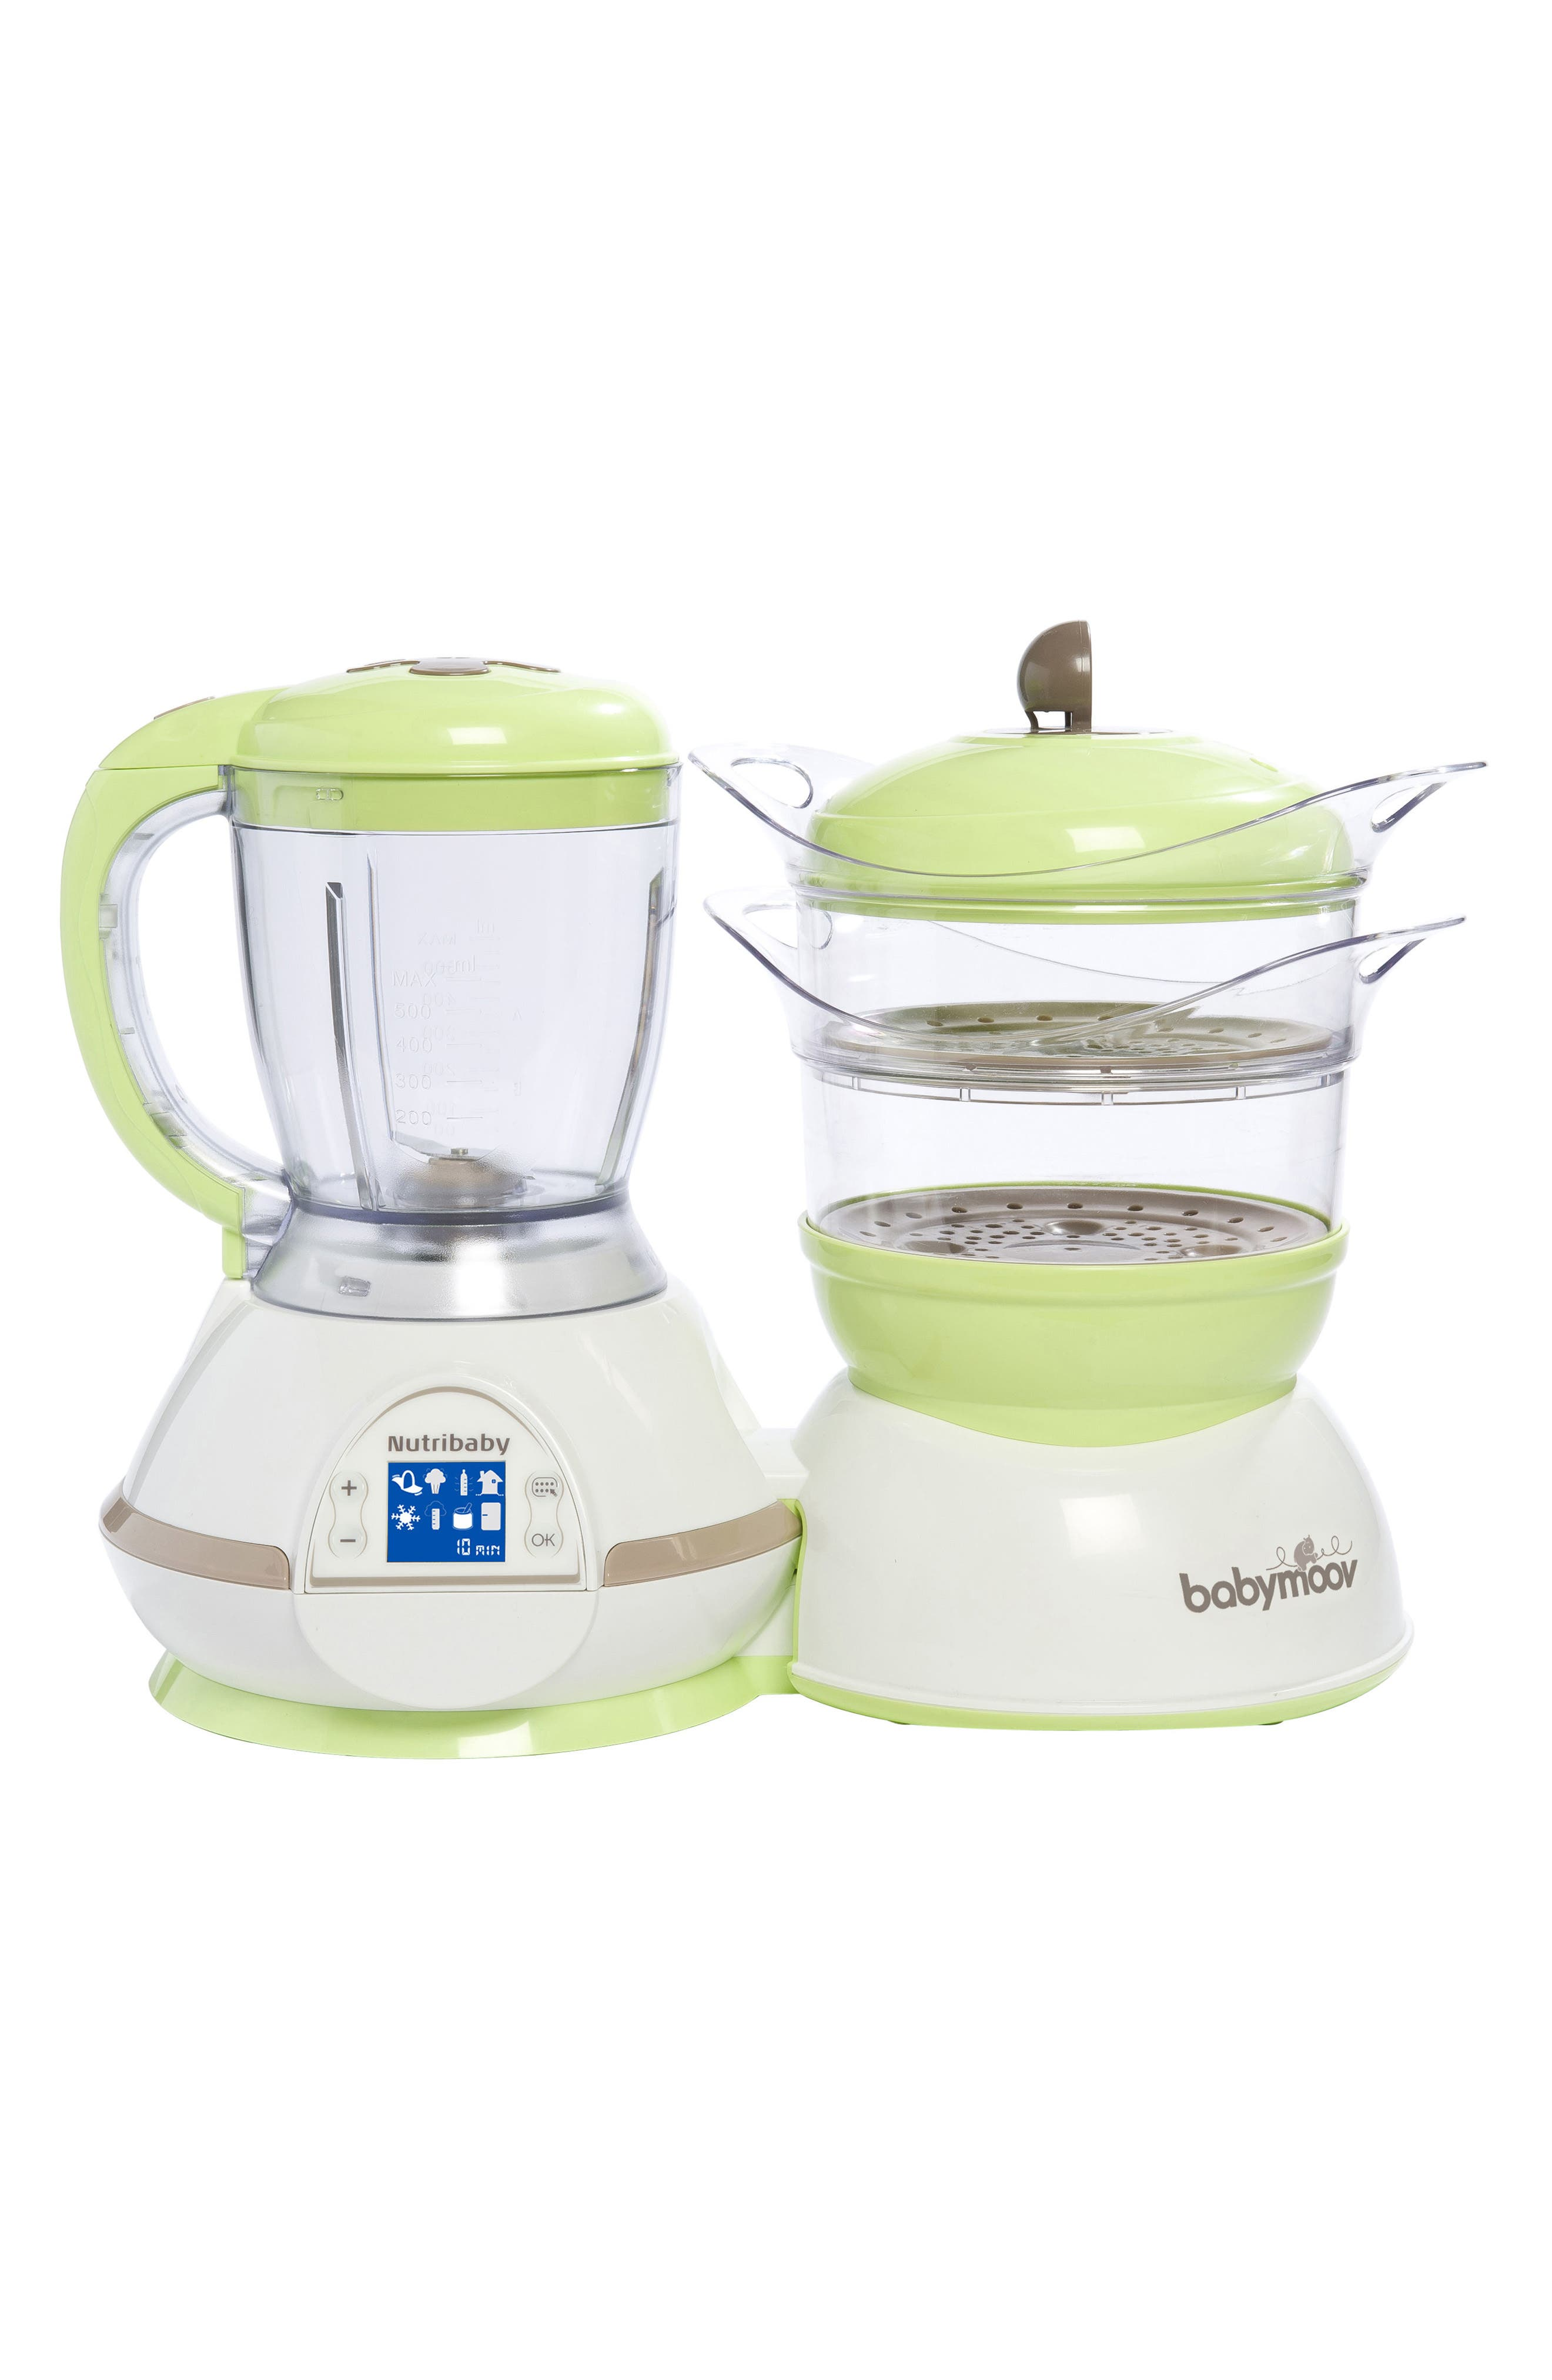 Nutribaby 5-In-1 Baby Food Maker,                         Main,                         color, ZEN